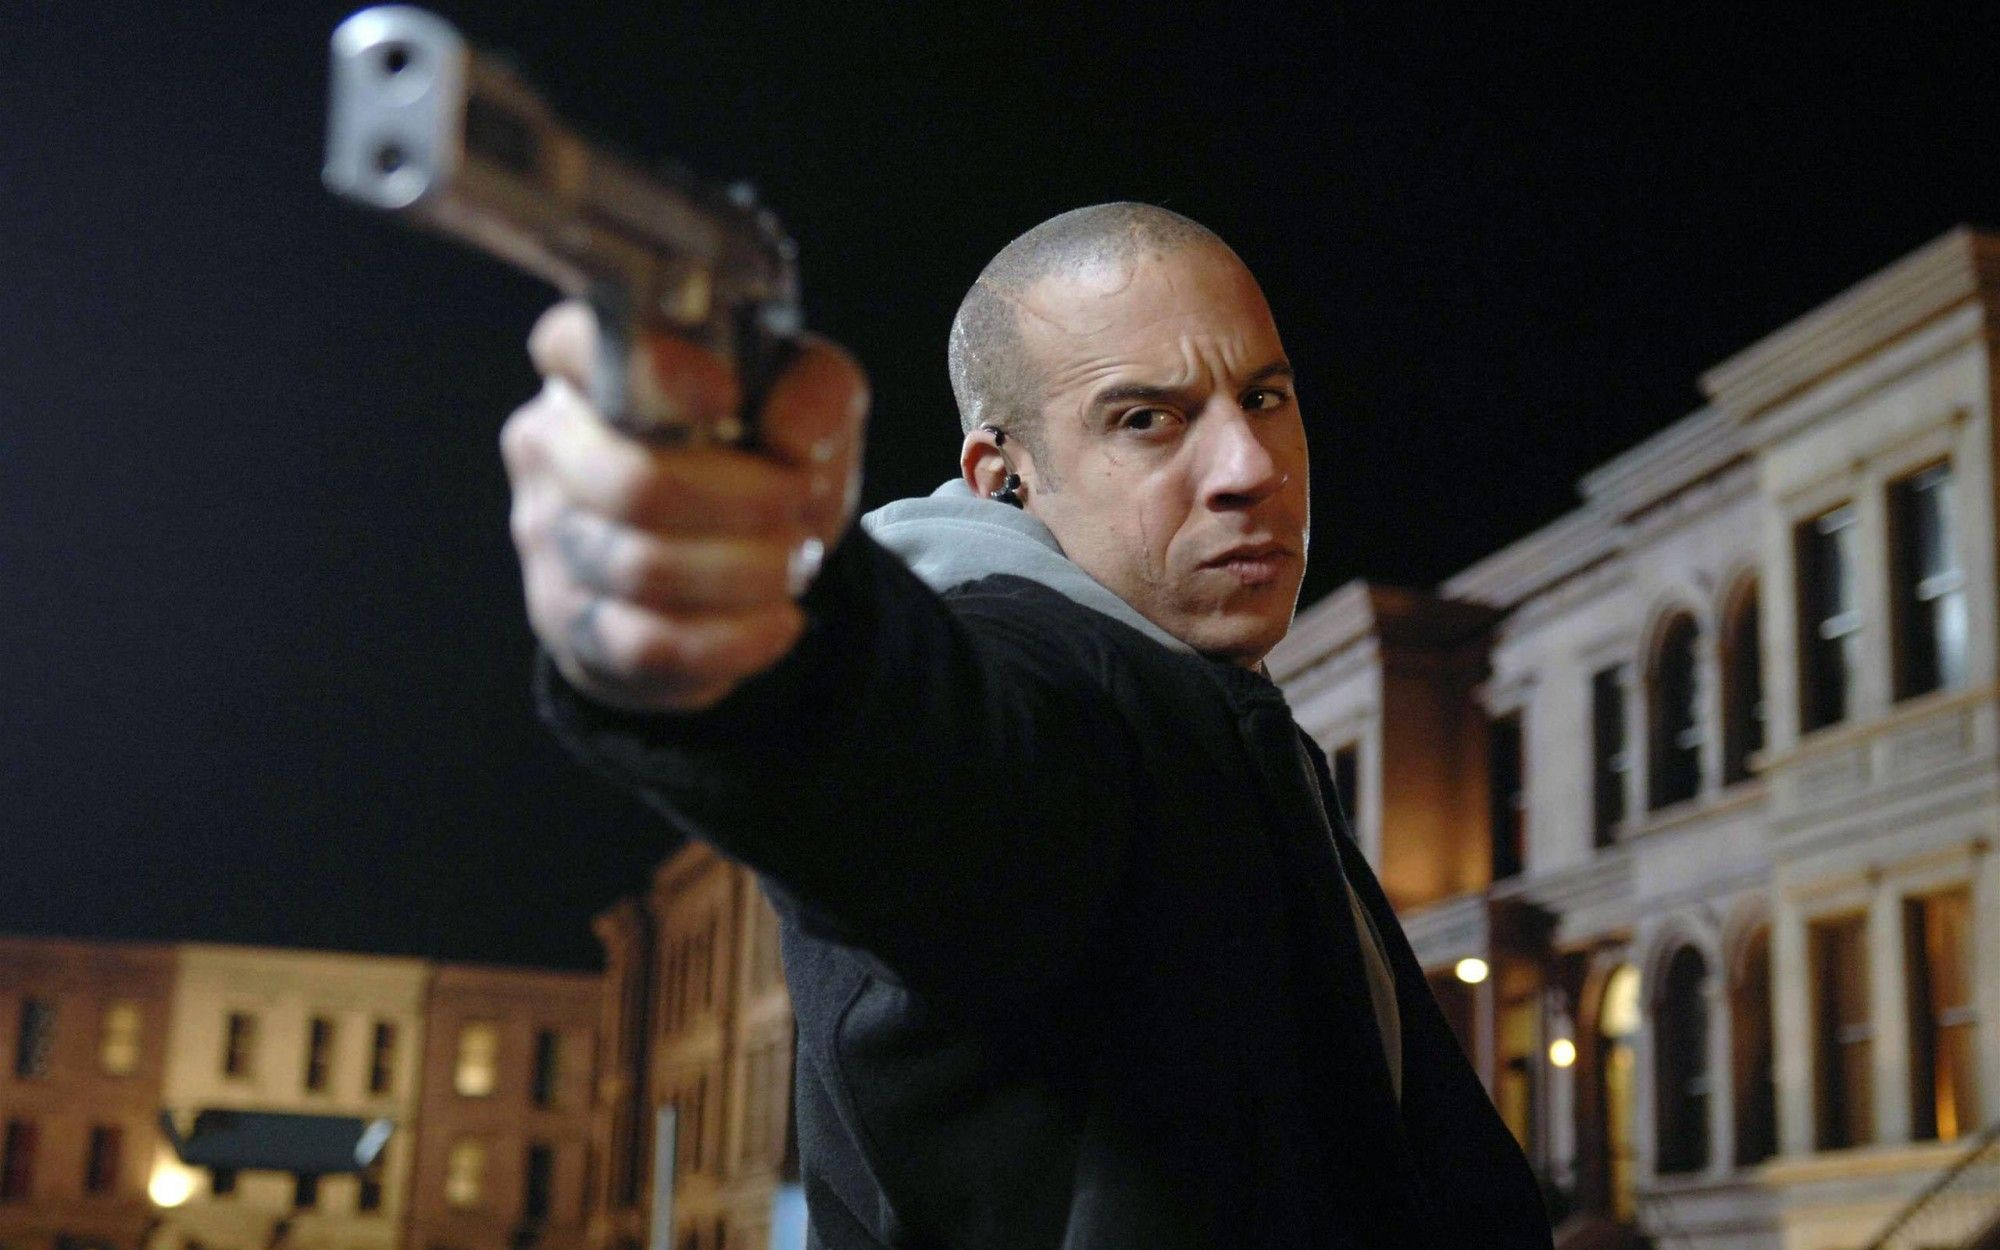 Happy 45th Birthday, Vin Diesel! Click on the photo to see